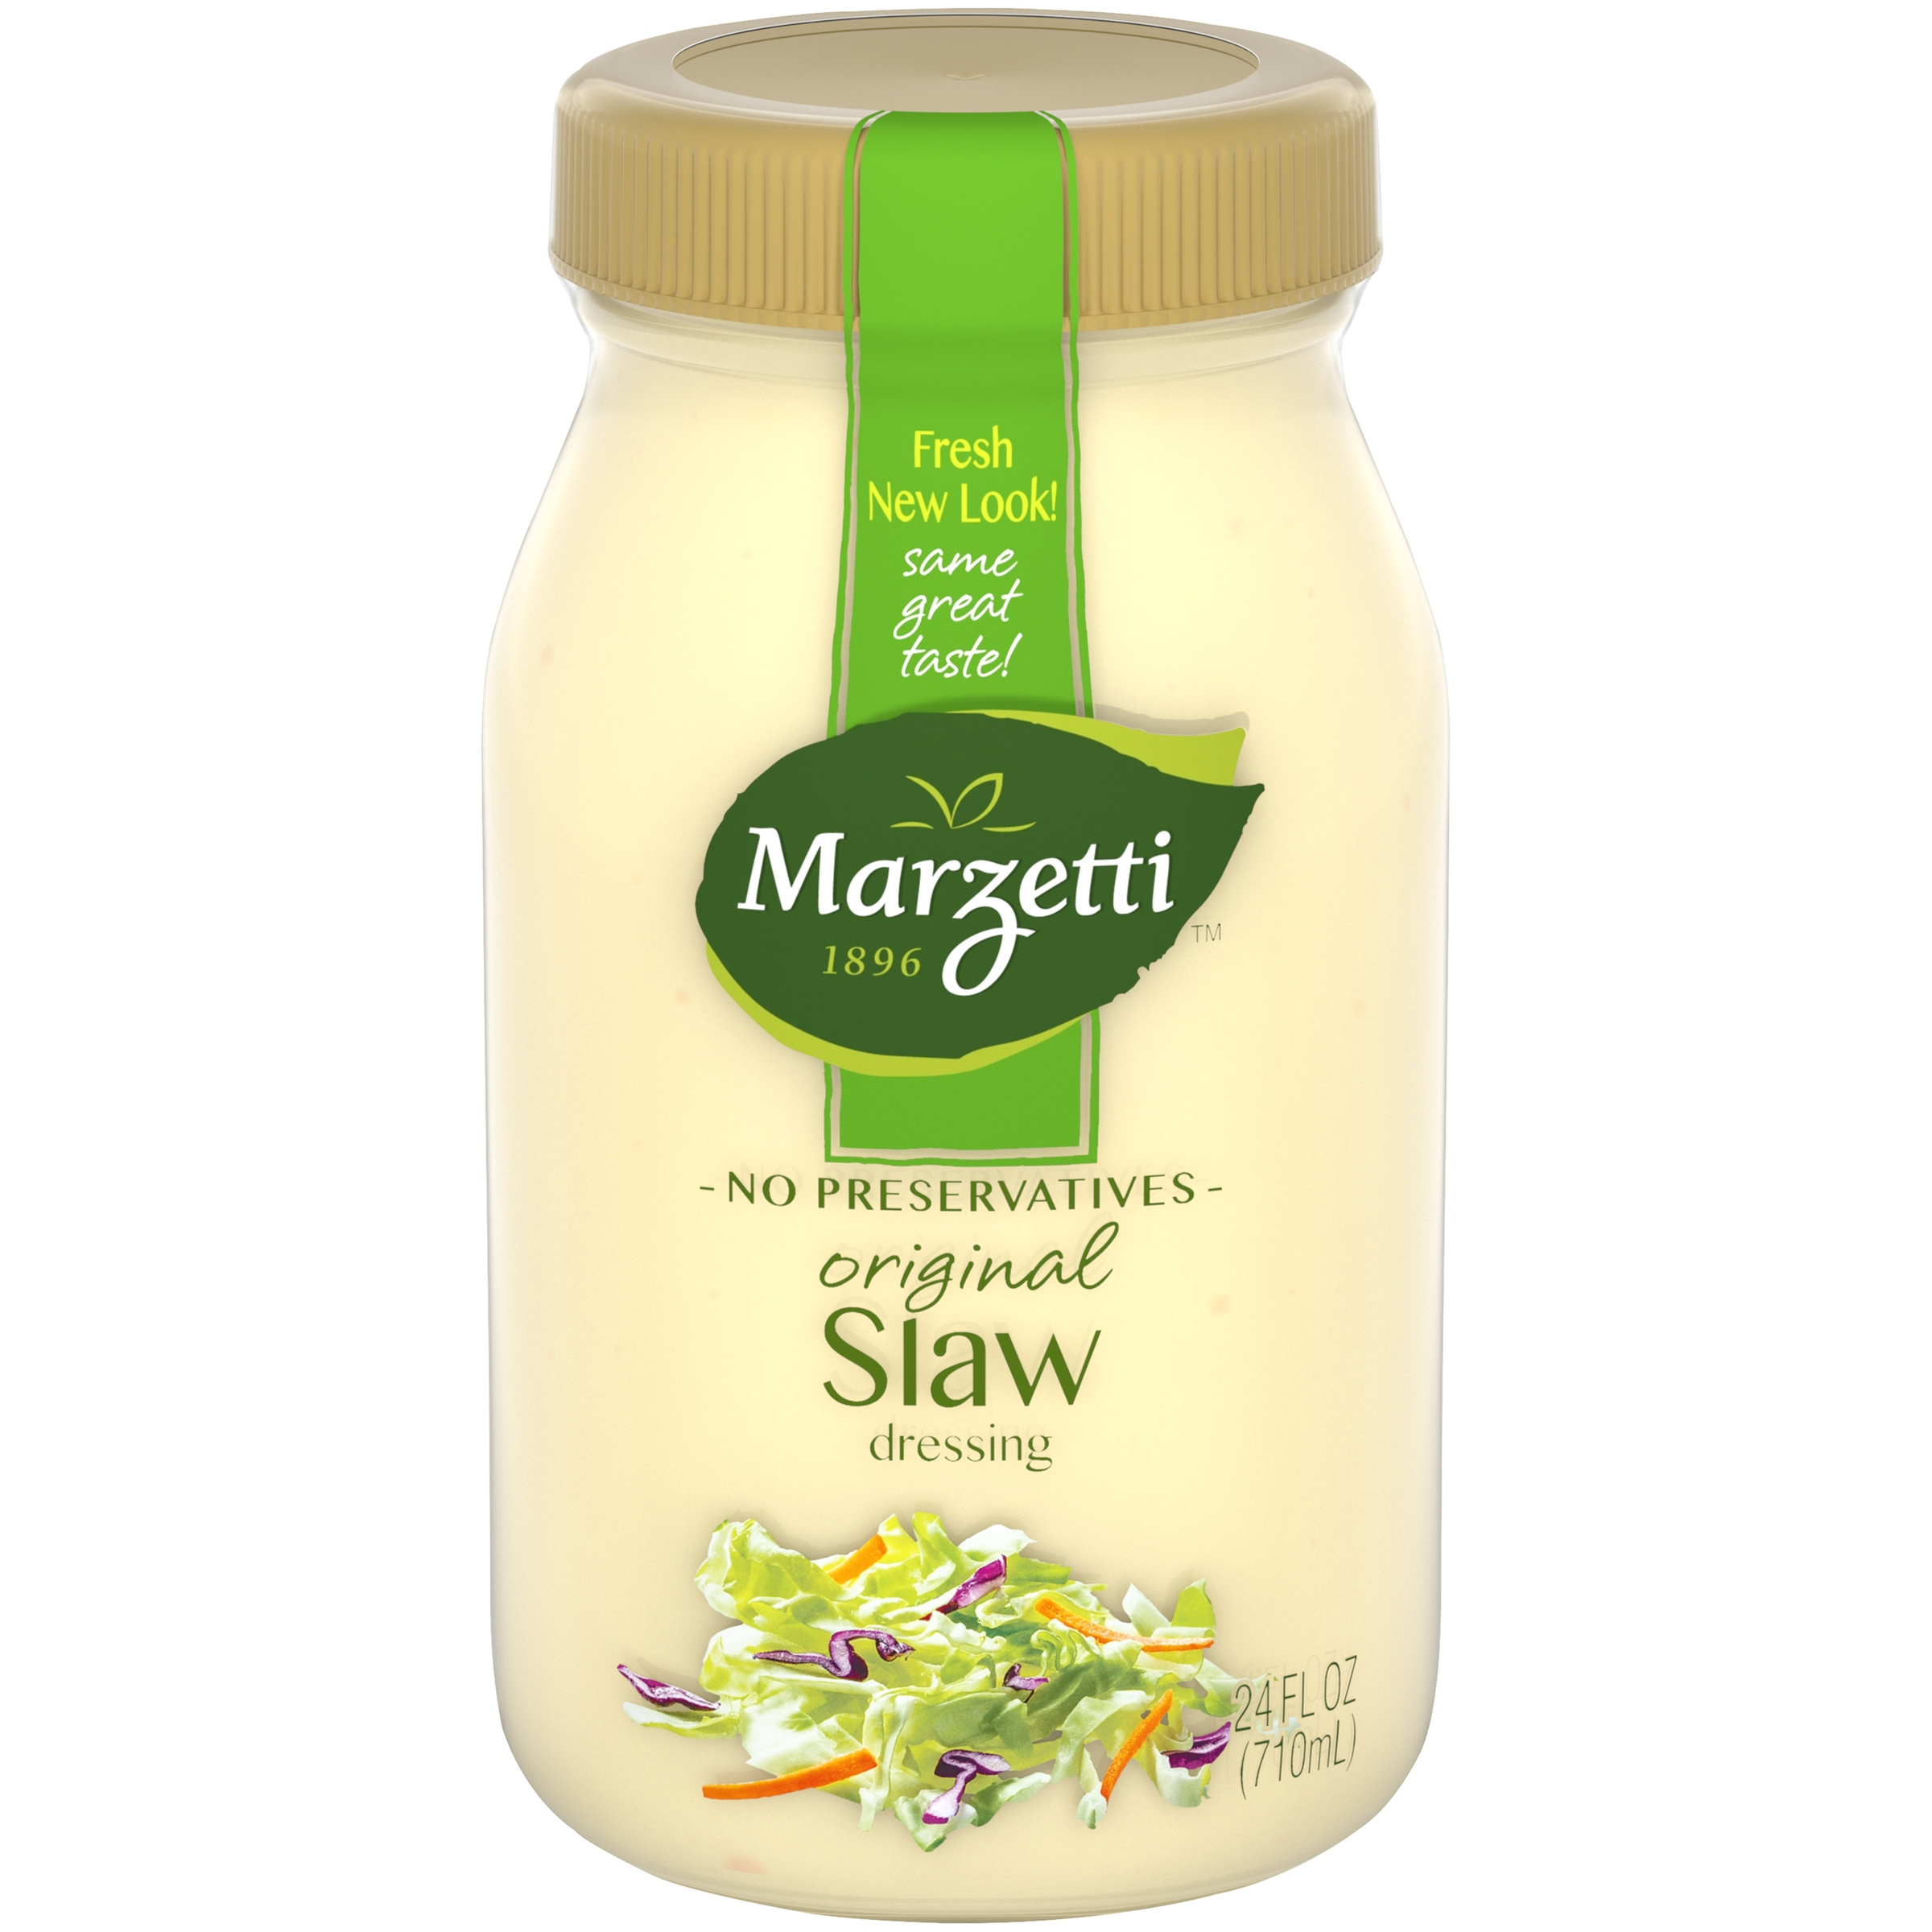 Marzetti™ Original Slaw Dressing 24 fl. oz. Jar